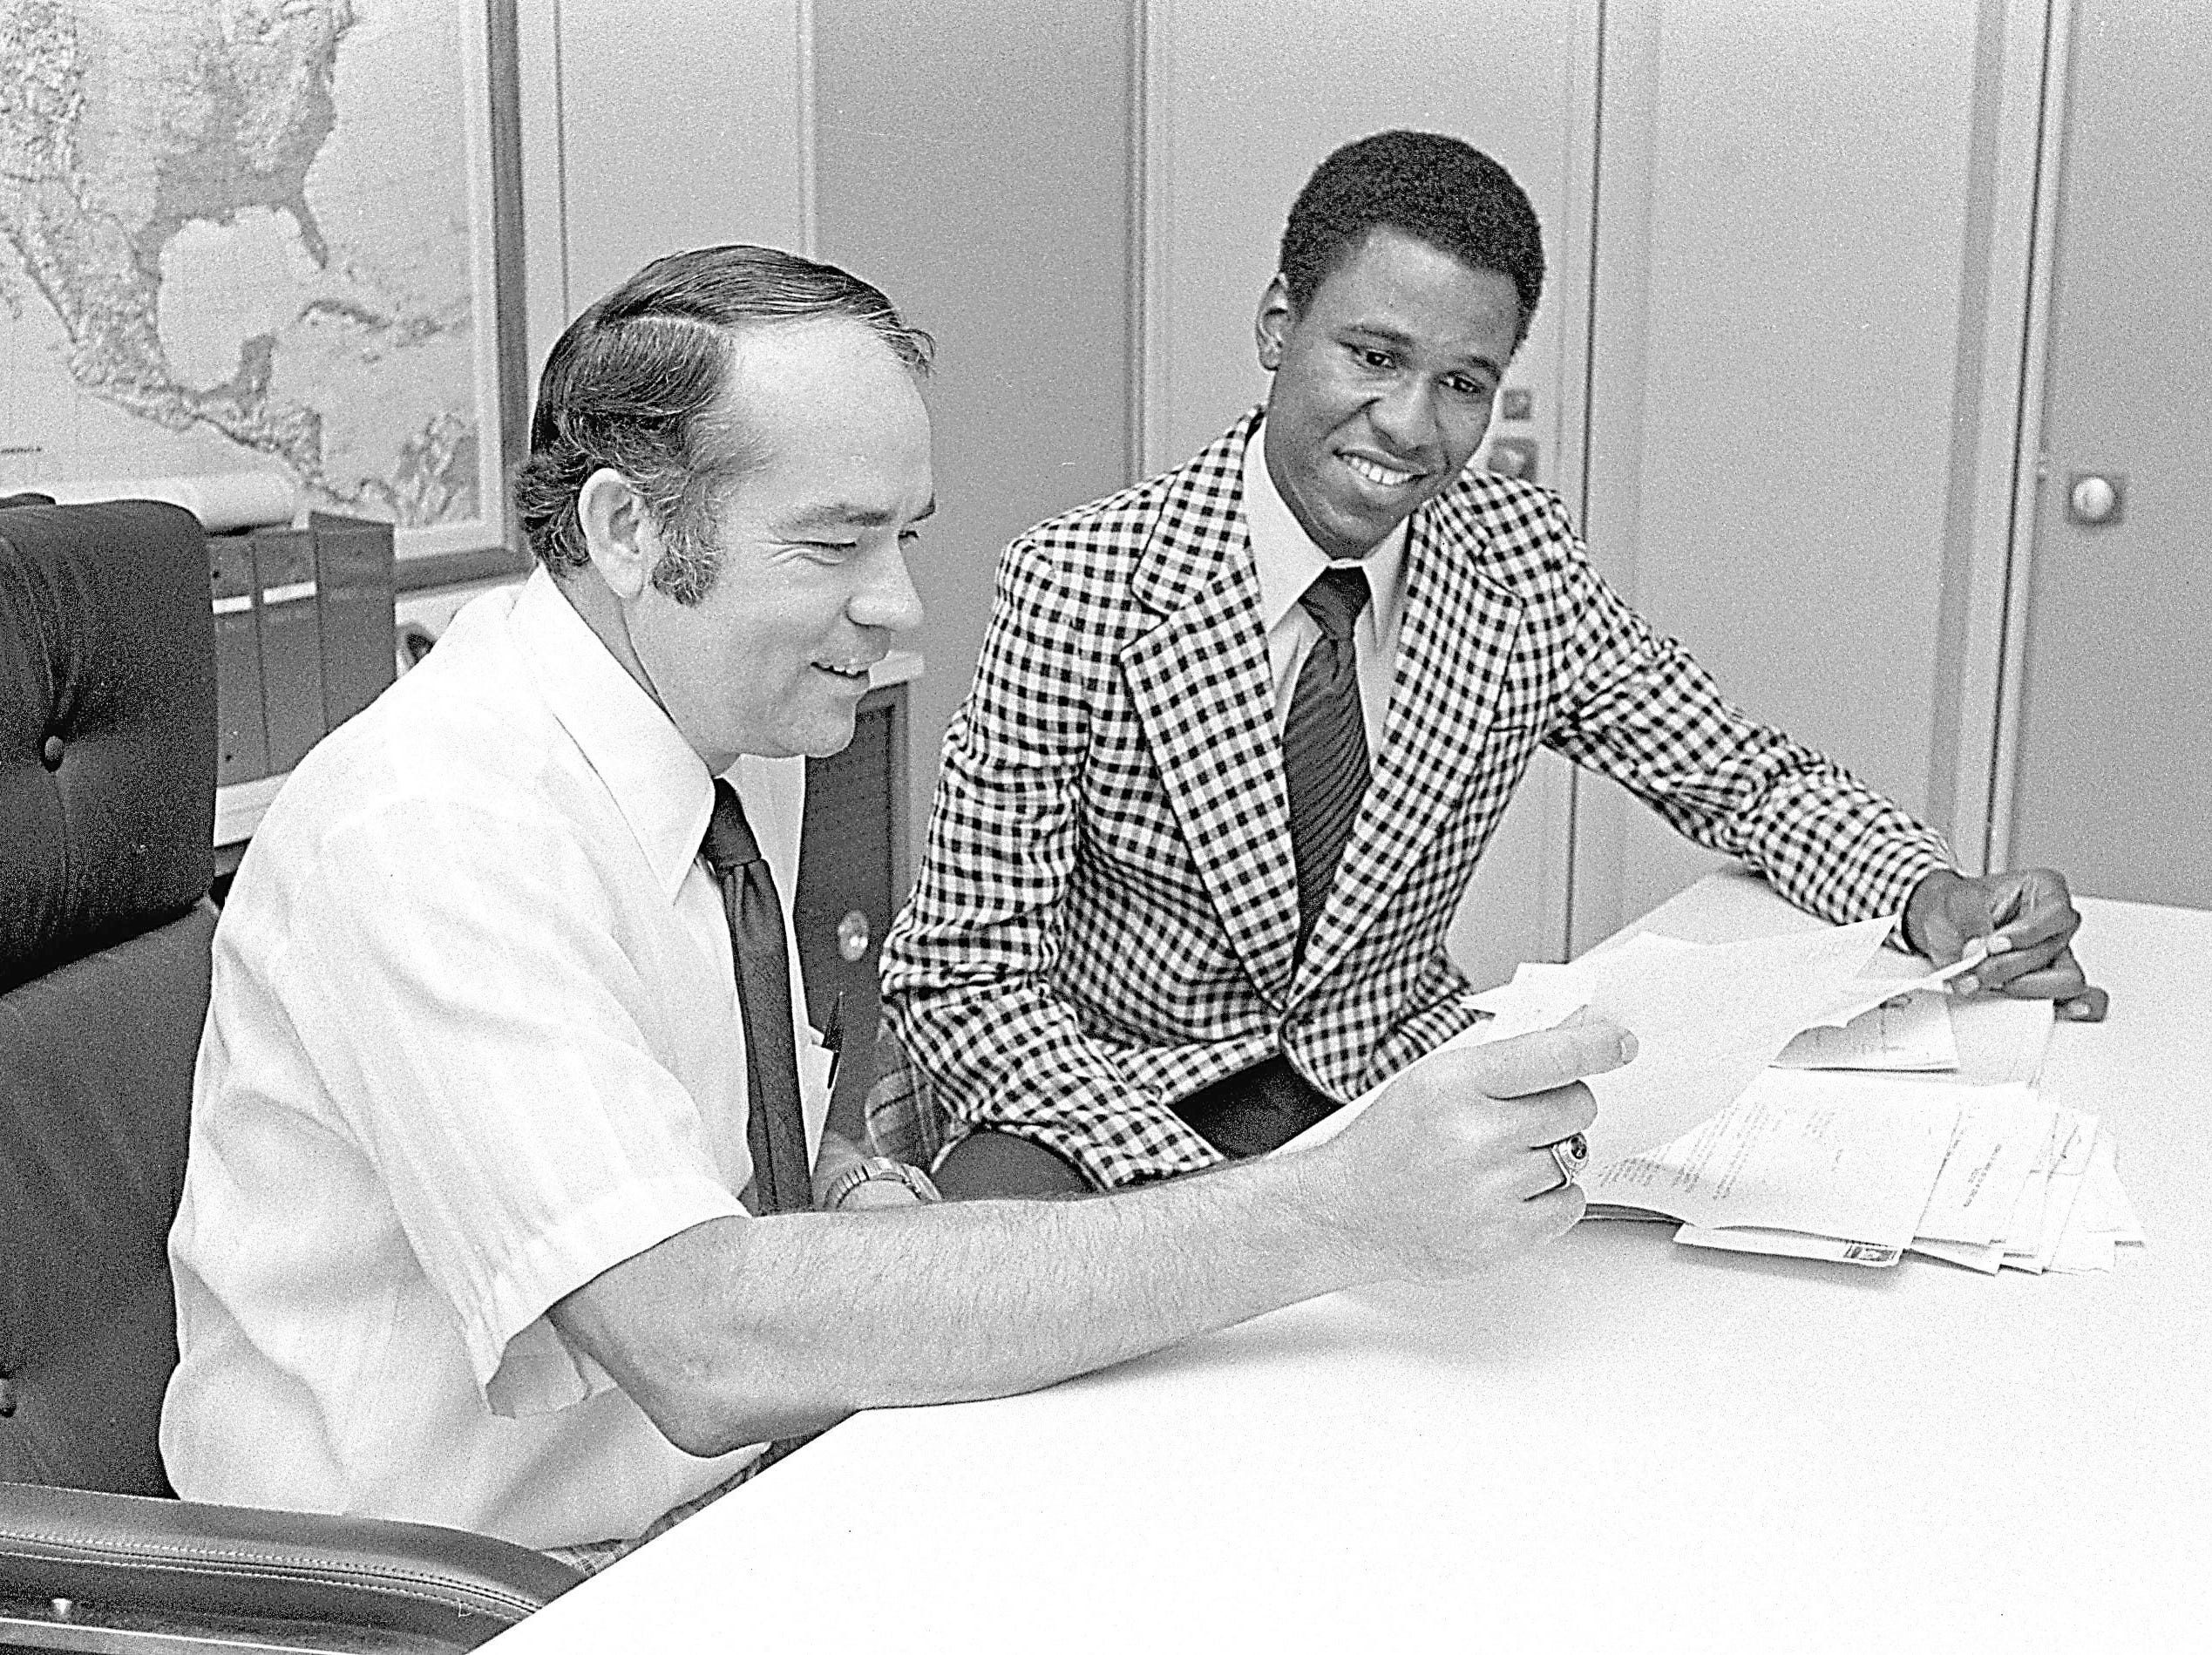 Memphis City Schools newly appointed deputy superintendents Ray Holt (left) and Willie Herenton are shown in a September 9, 1975 photograph.